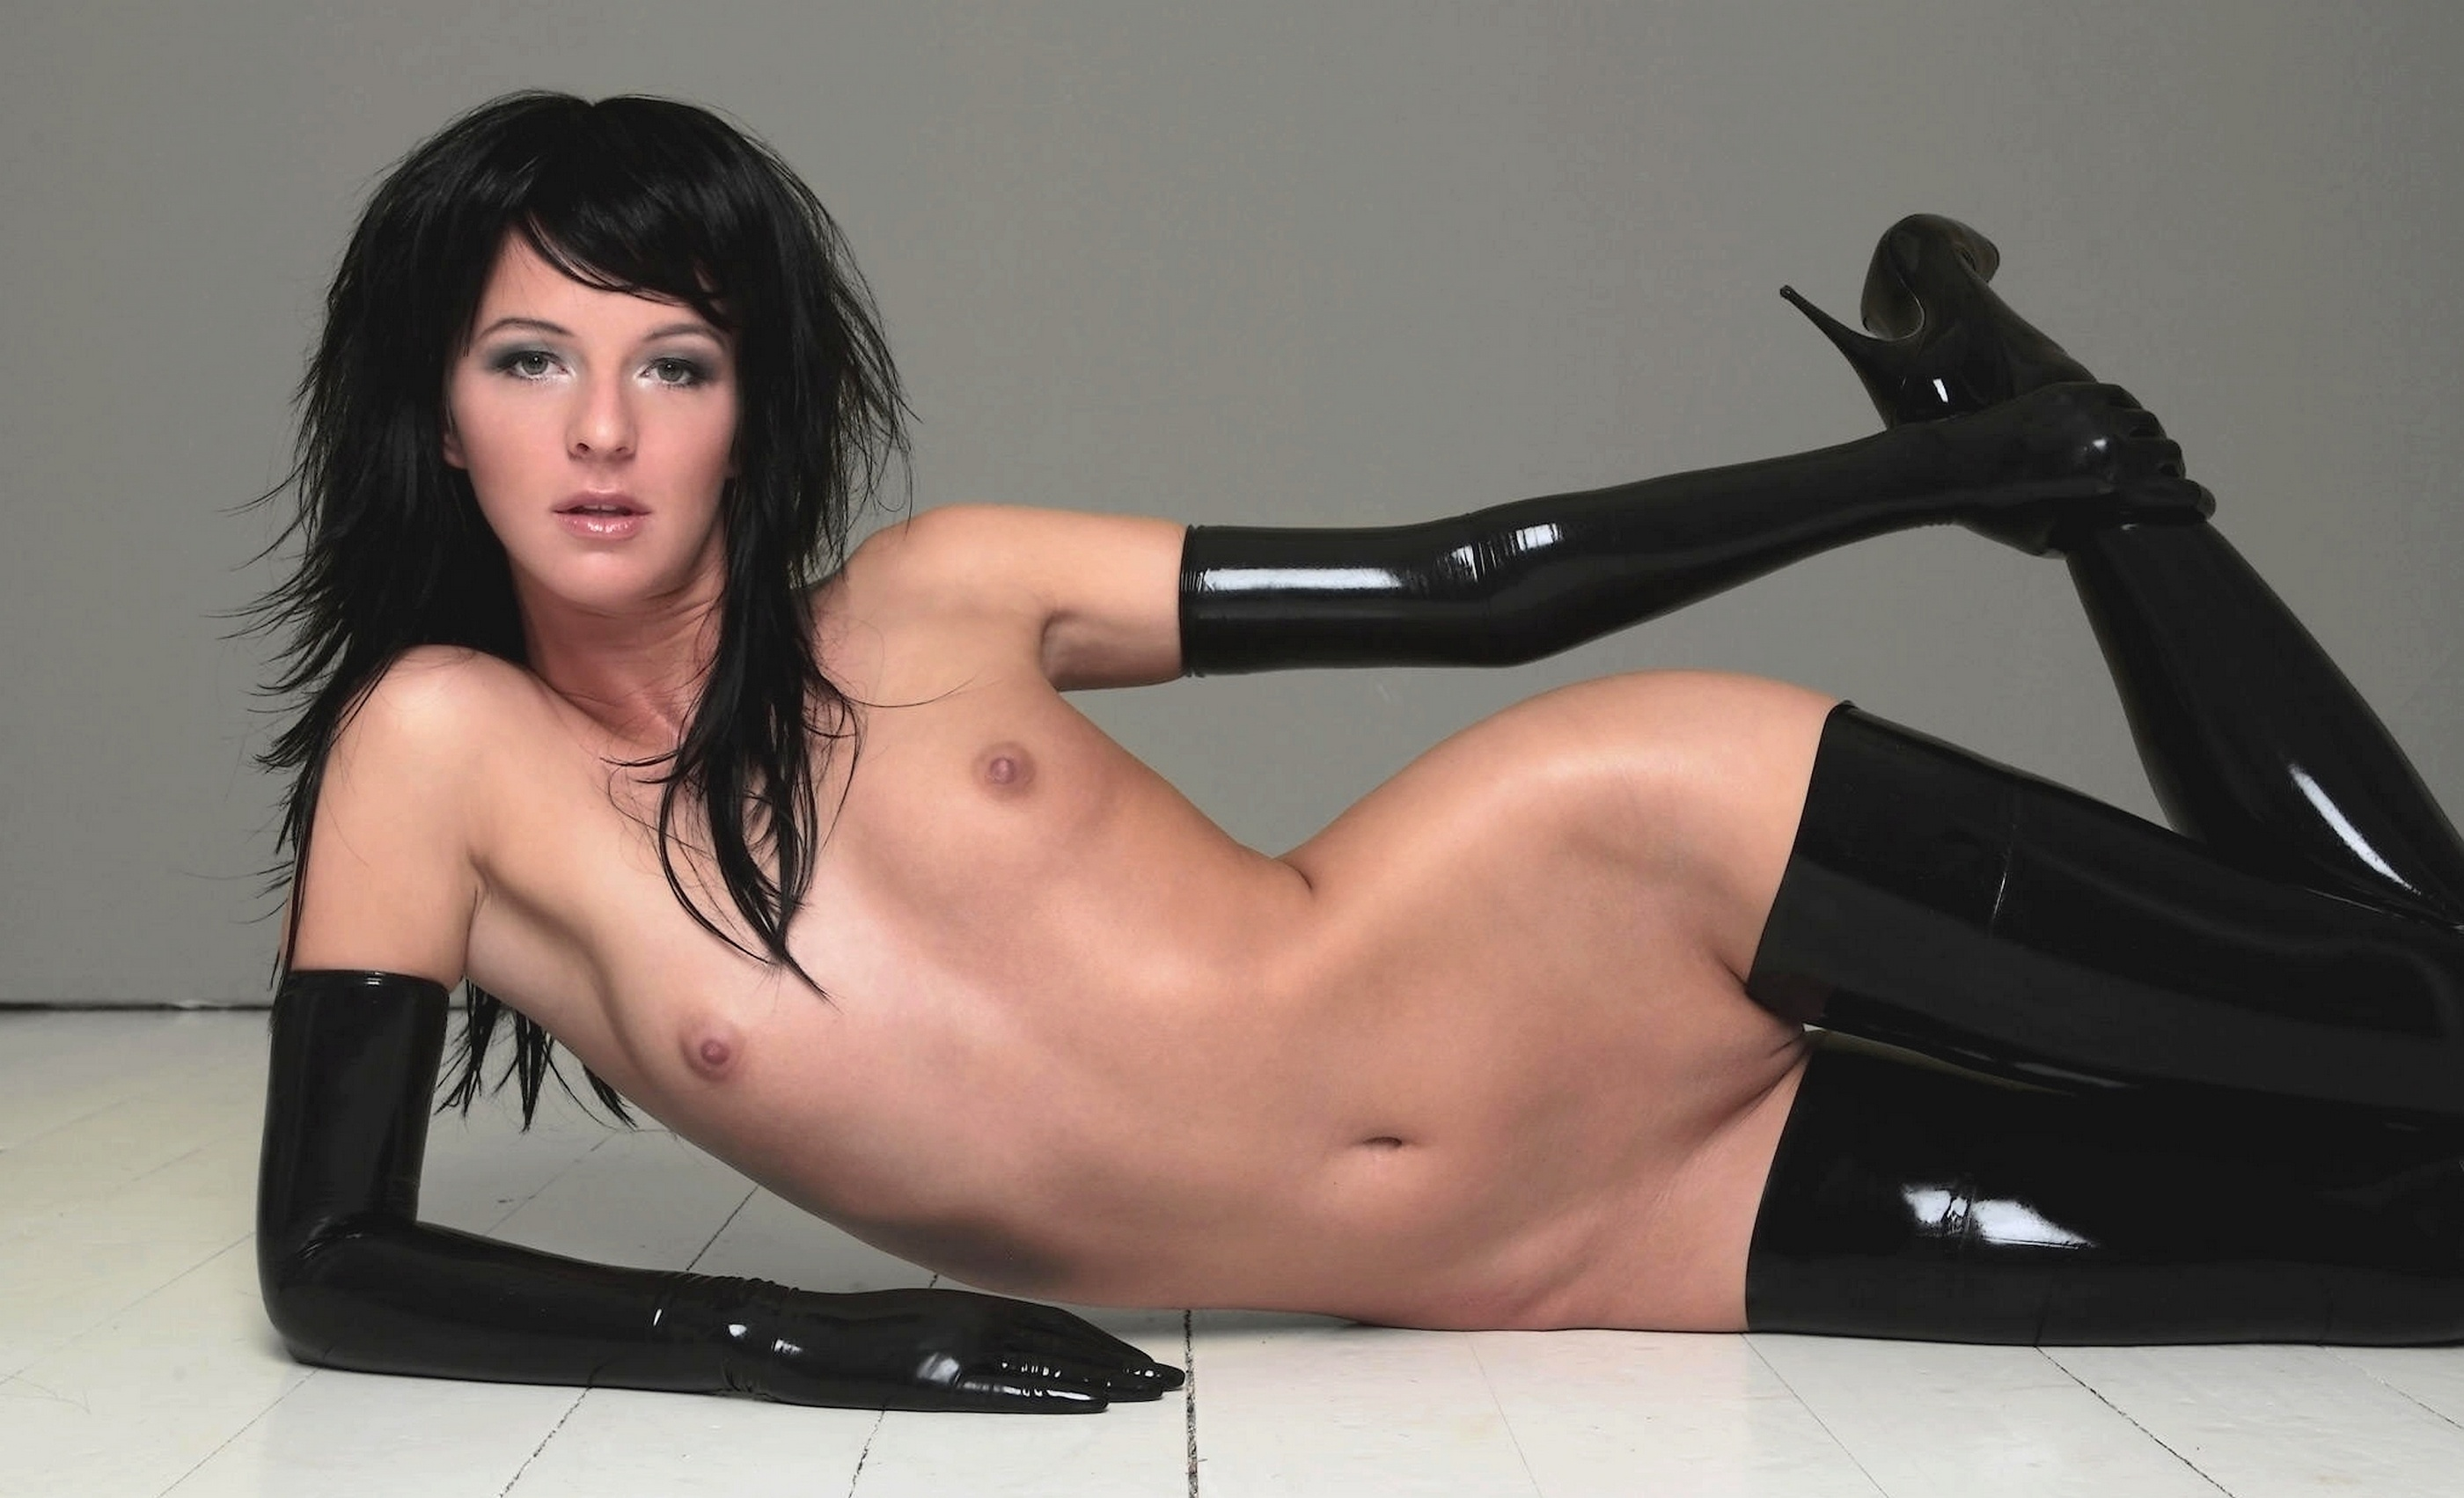 Full body latex nude models